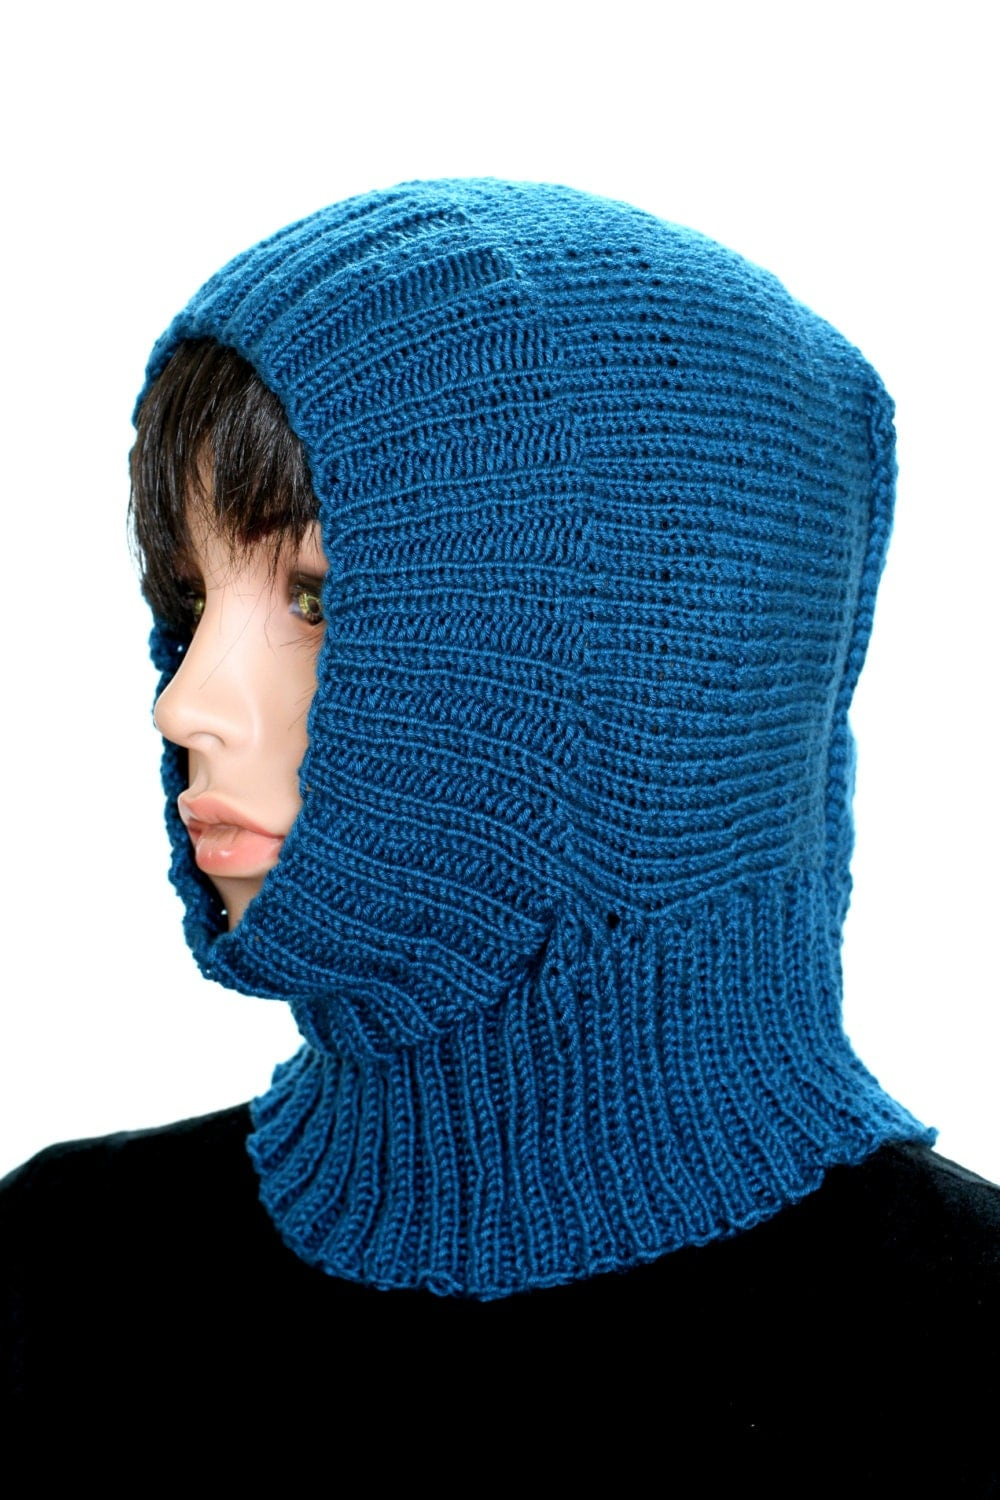 Knit Ski Mask Pattern : Knitted Helmet Pattern Knitted Winter Cap Pattern Ski Mask